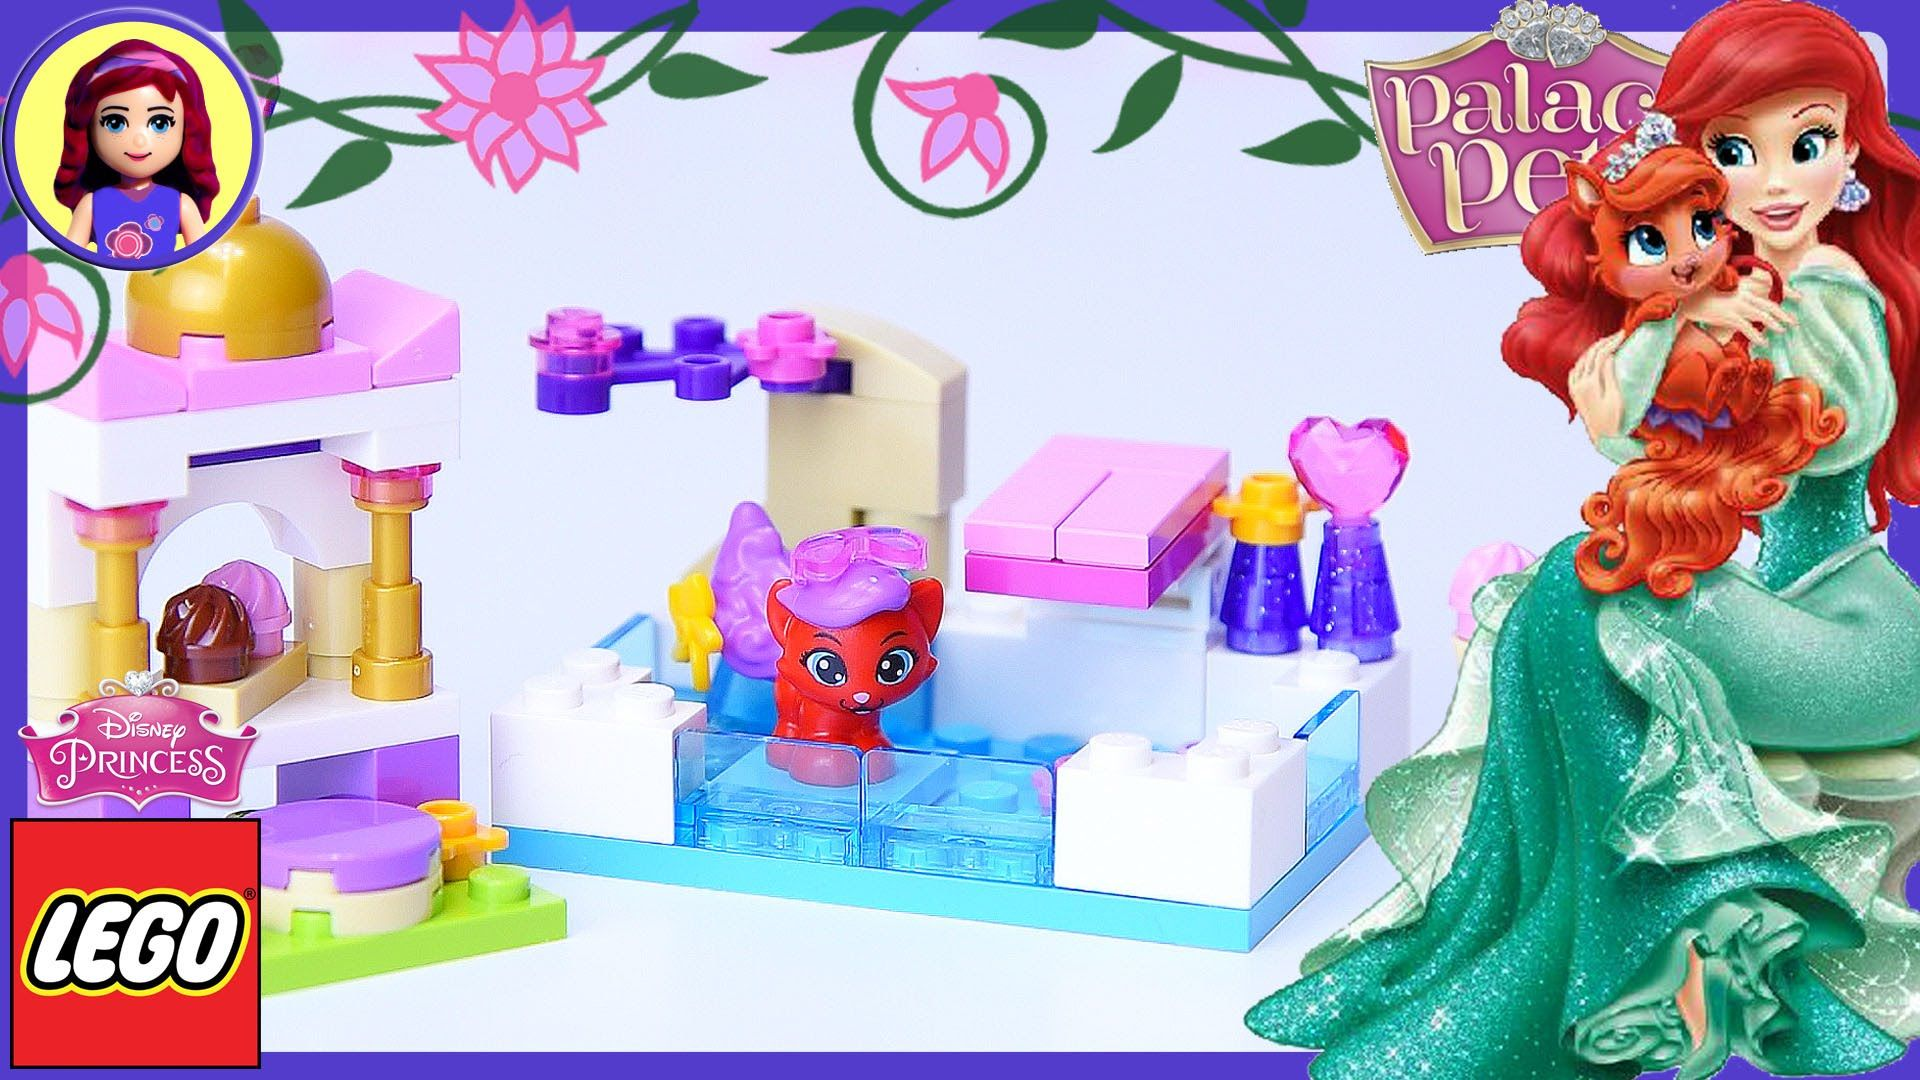 Lego Disney Princess Palace Pets Treasure S Day At The Pool Build Review Lego Disney Princess Disney Princess Palace Pets Princess Palace Pets